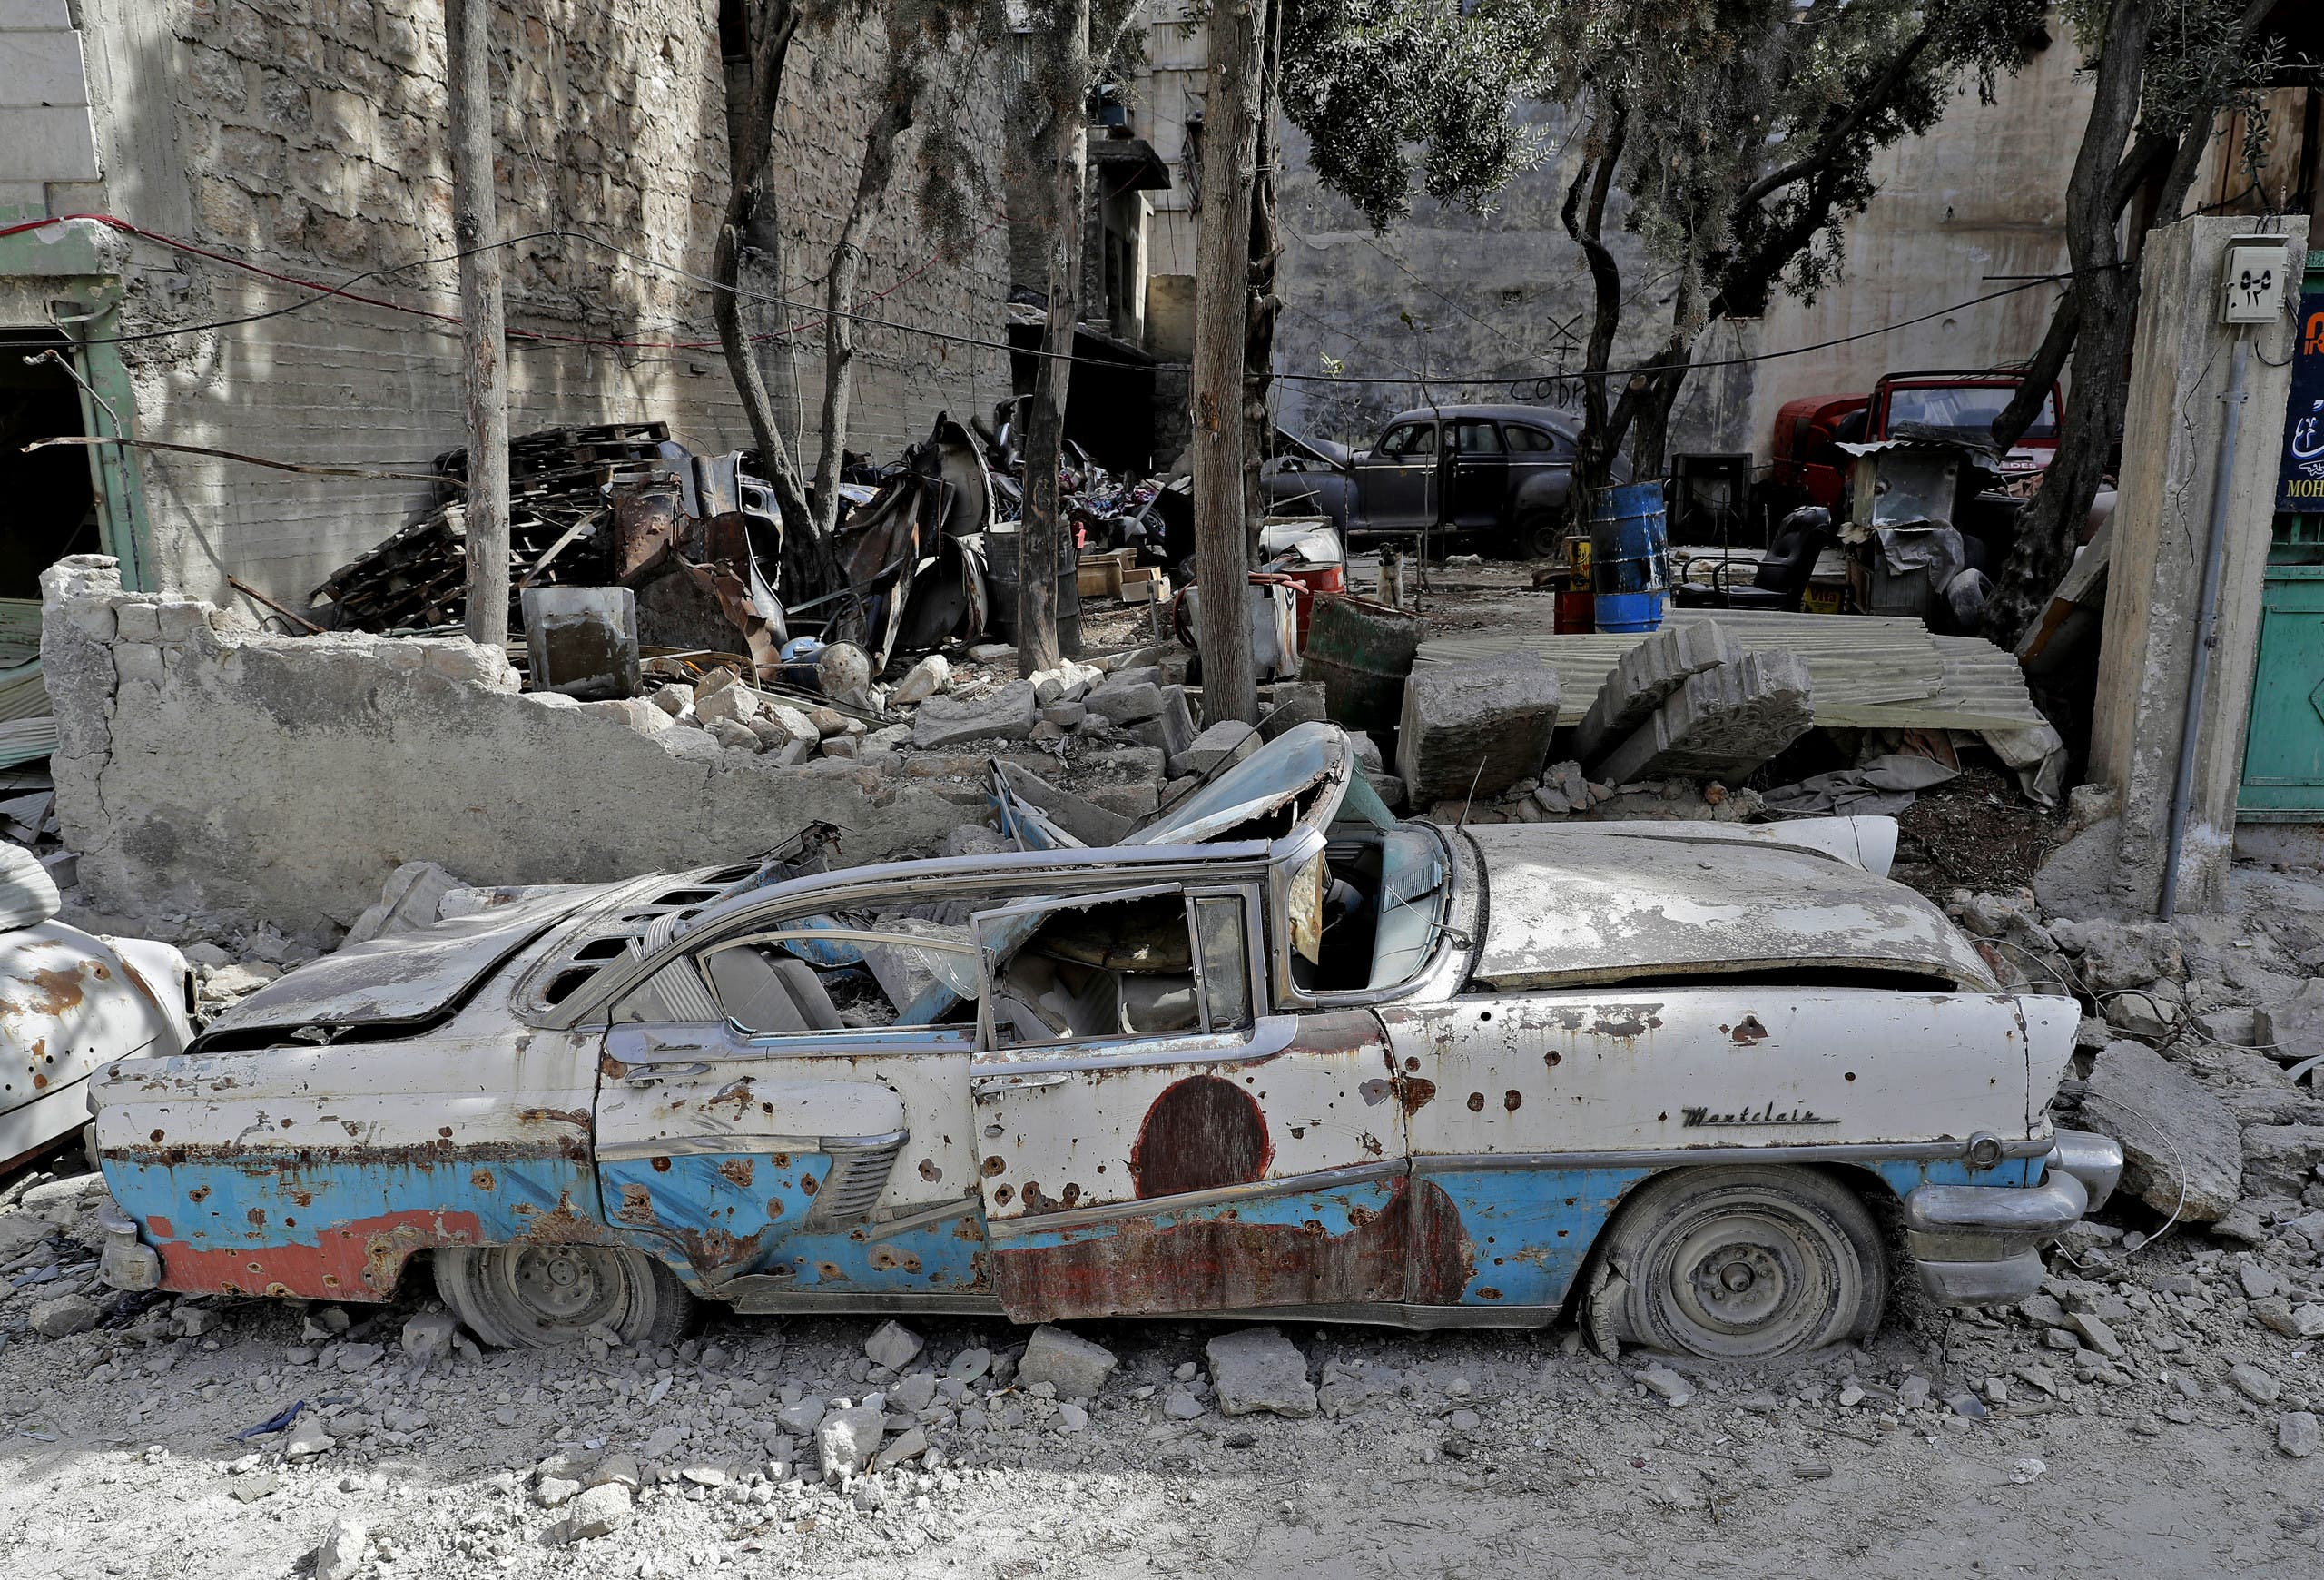 A picture taken on March 9, 2017, shows a 1957 Mercury Montclair parked outside the home of Mohammad Mohiedine Anis in Aleppo's formerly rebel-held al-Shaar neighbourhood. AFP